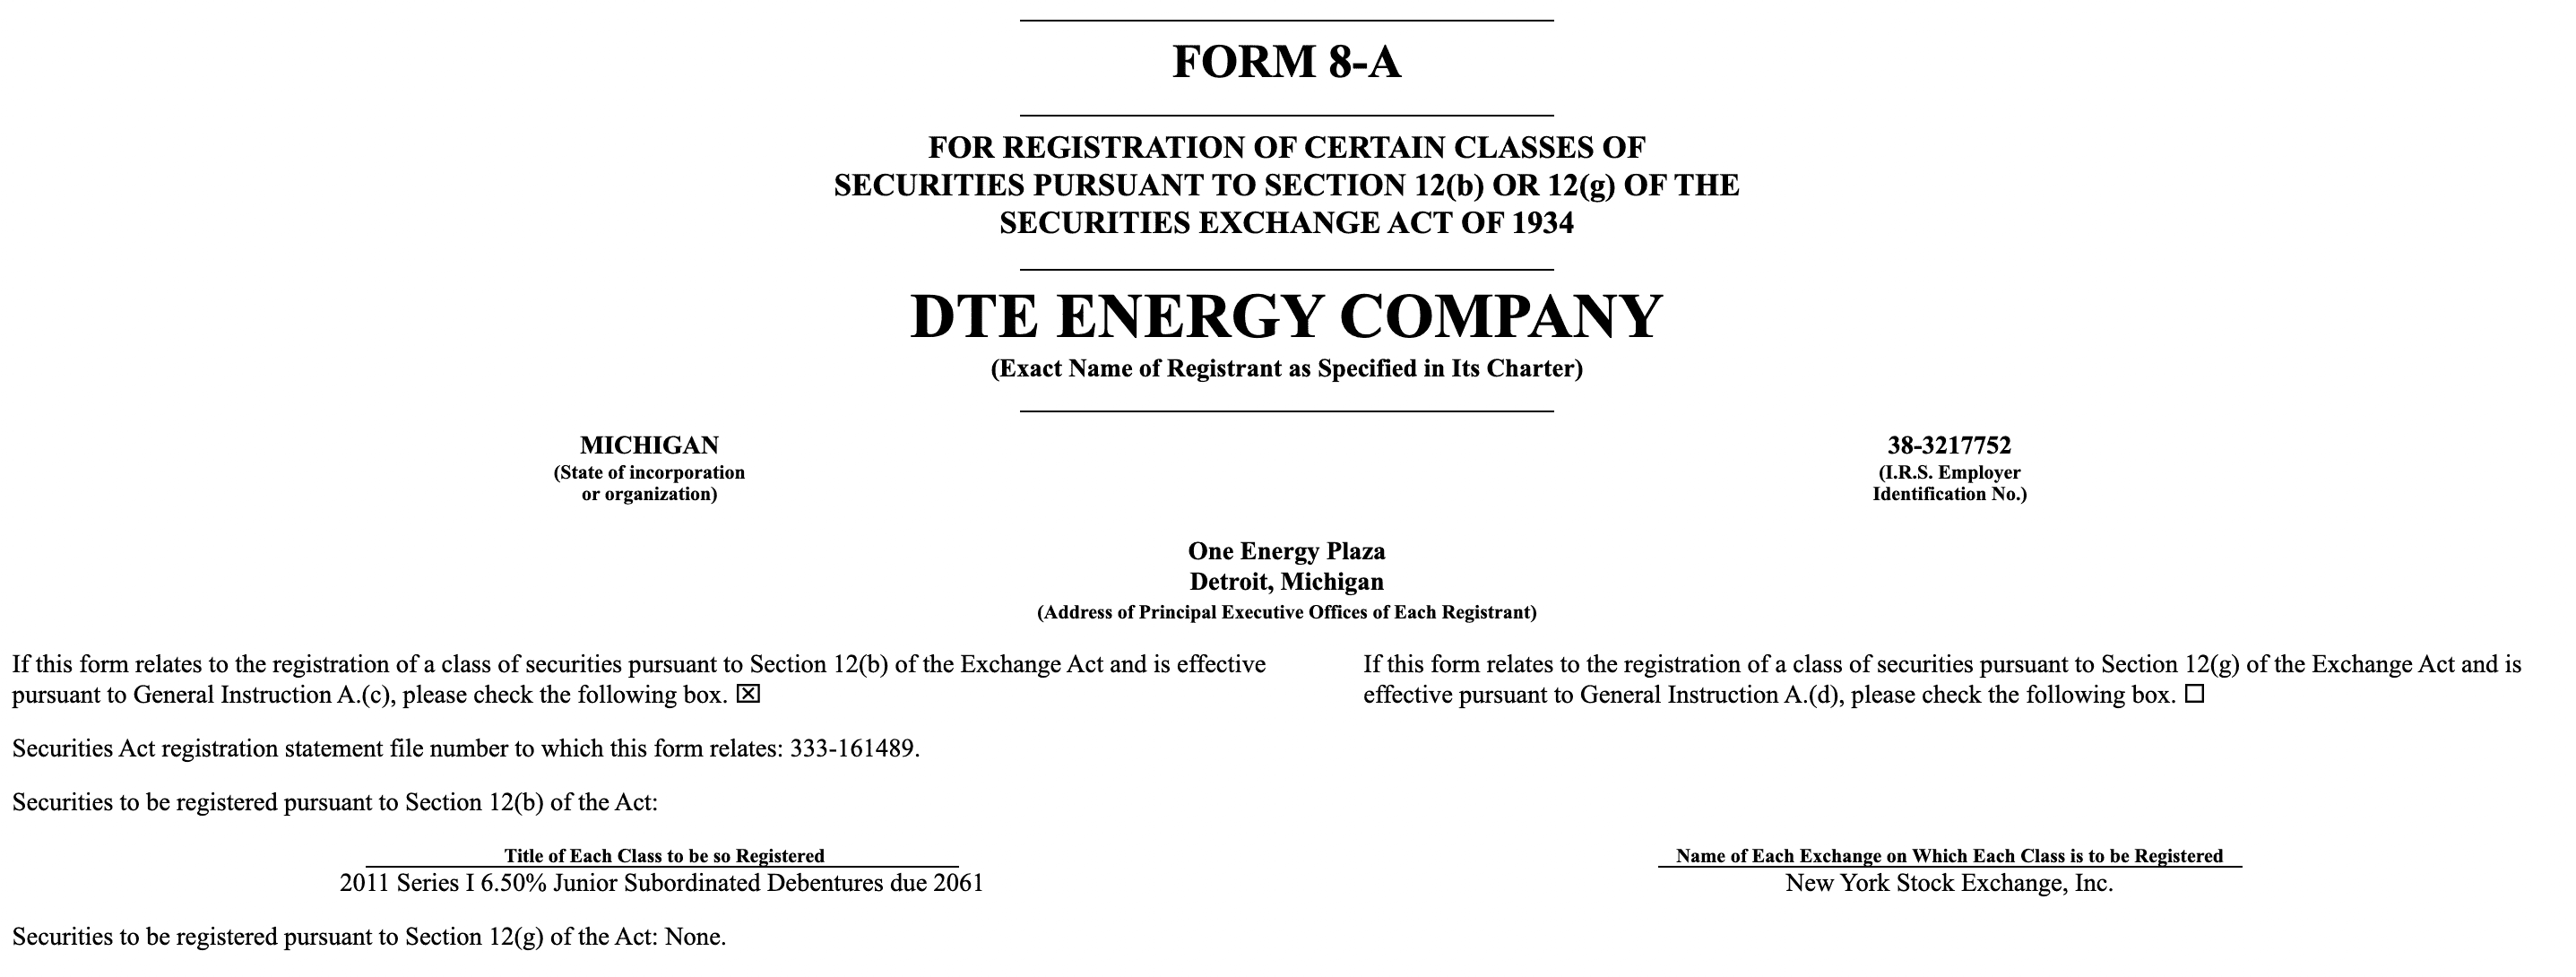 DTE ENERGY COMPANY Form 8-A